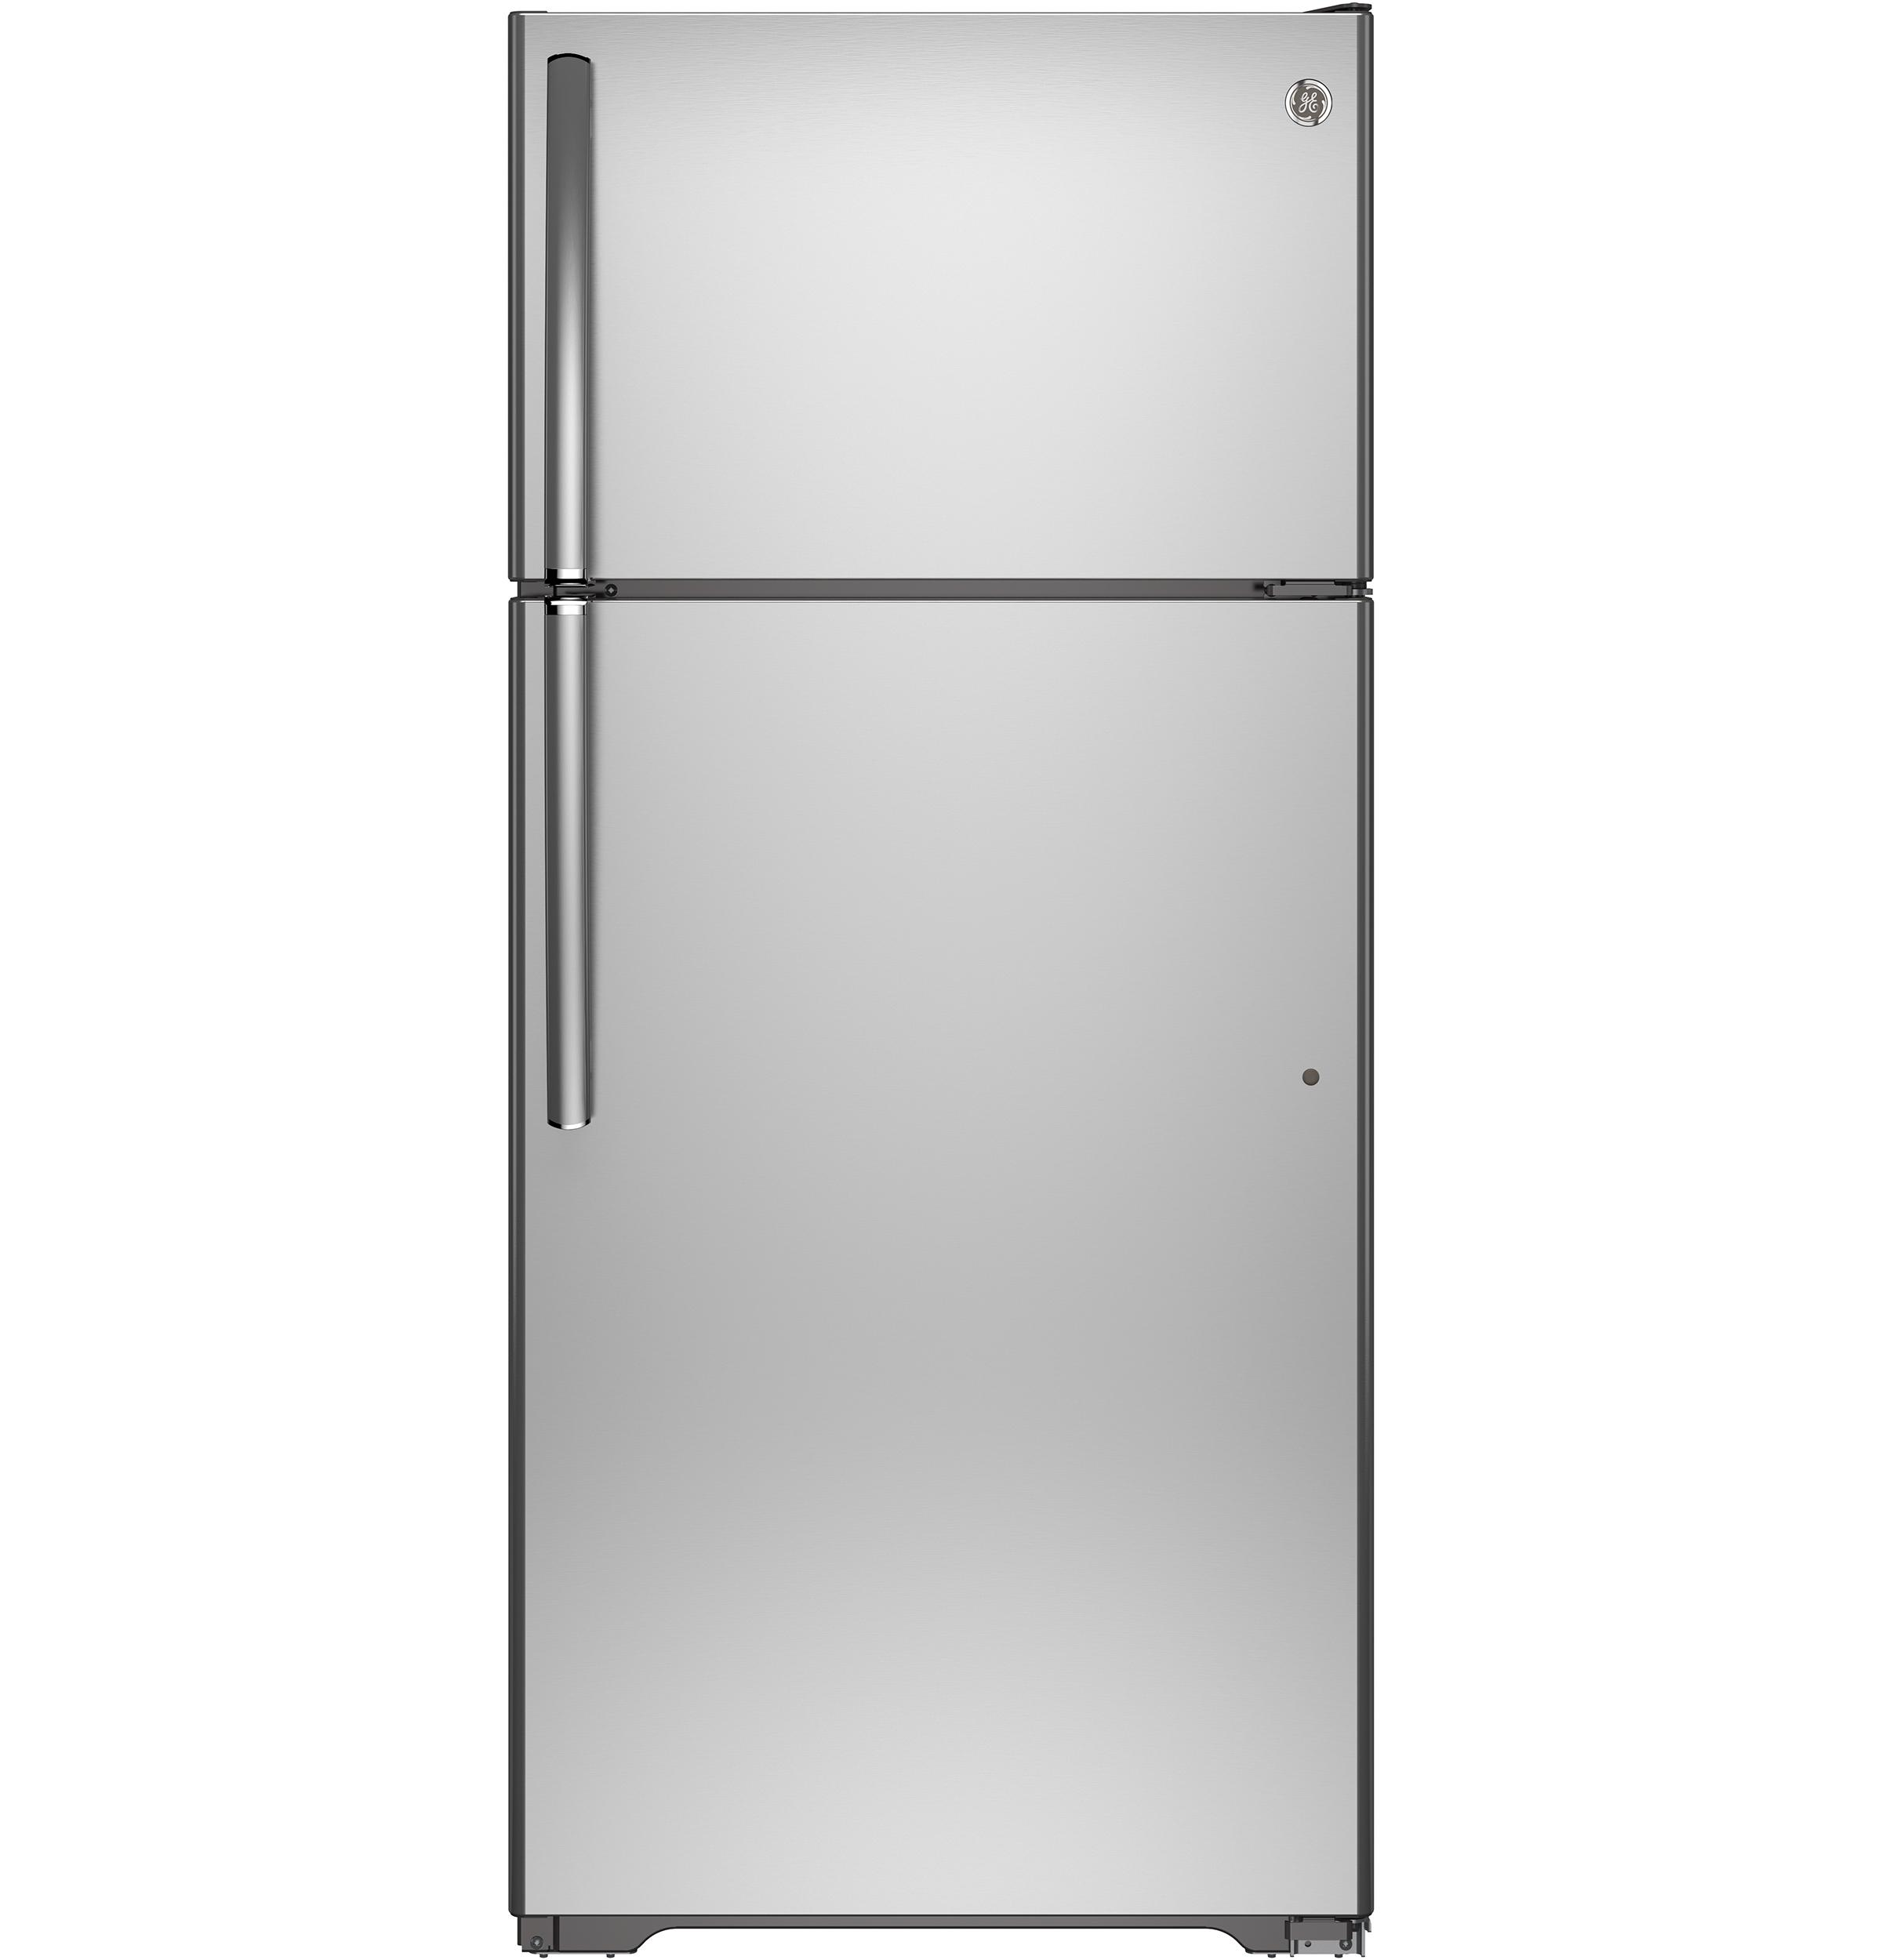 Refrigerated General Electric Refrigerator